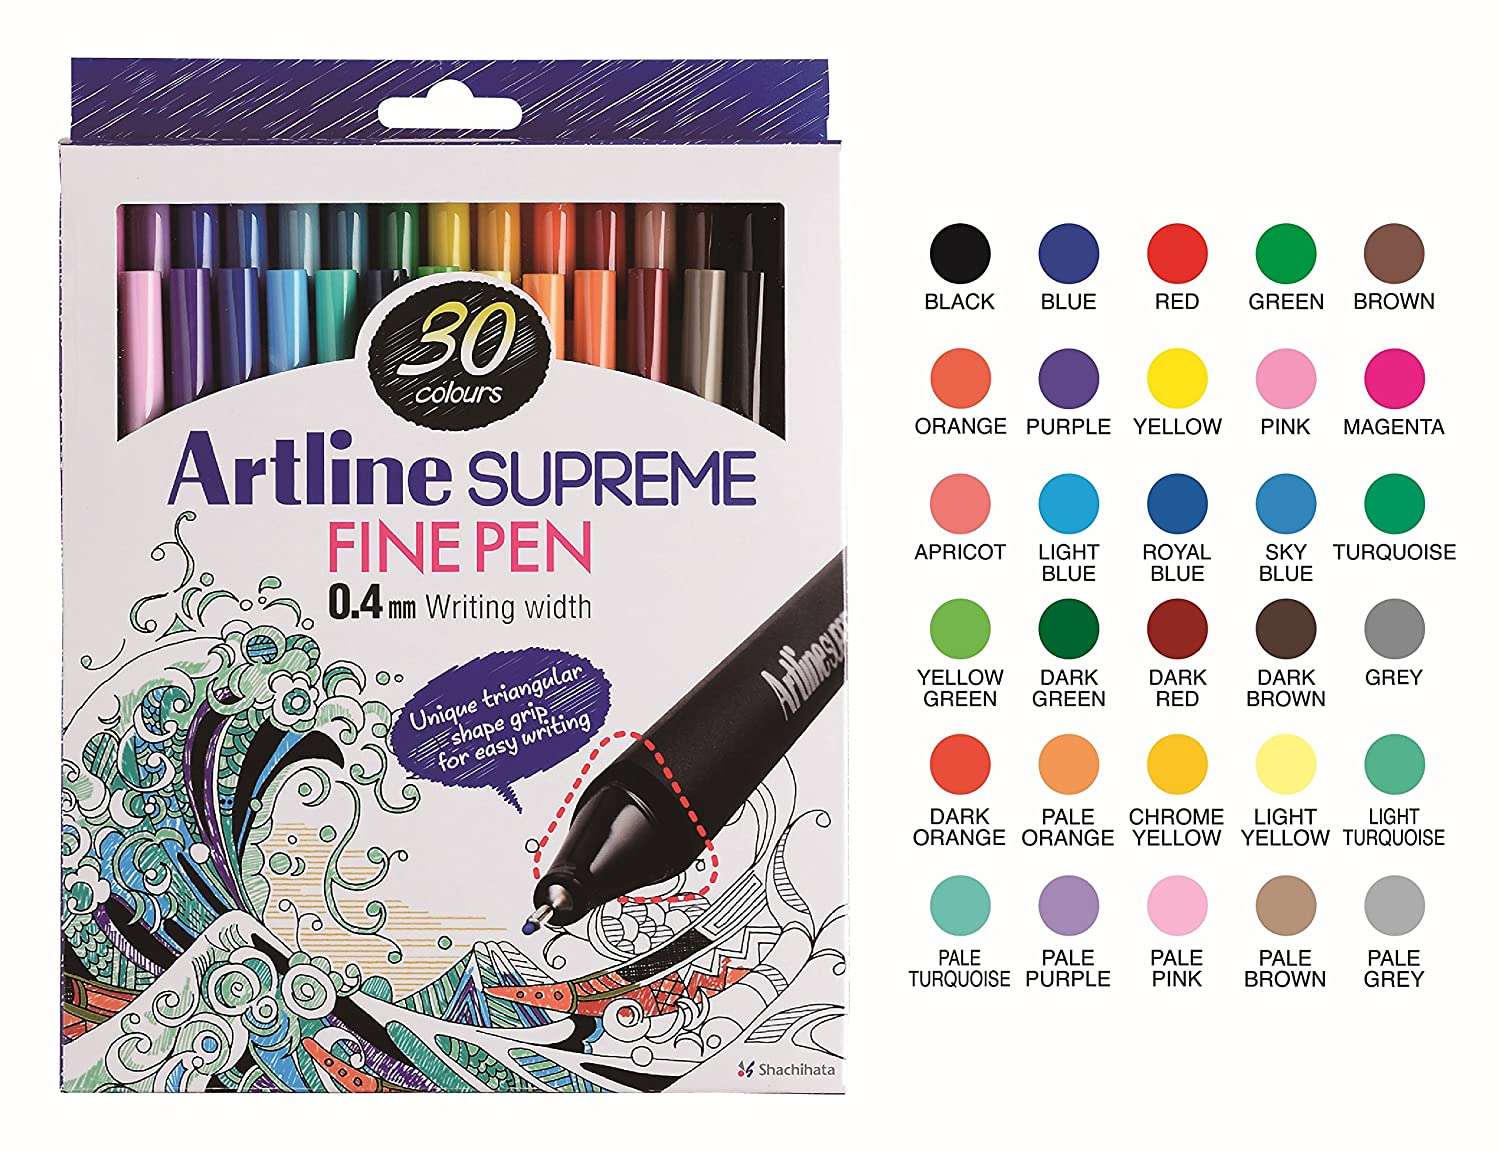 Artline 'Supreme Fine Pen' Fineliner Pens 0.4mm - Bright Vivid Colors For Technical Drawing - Pack 3